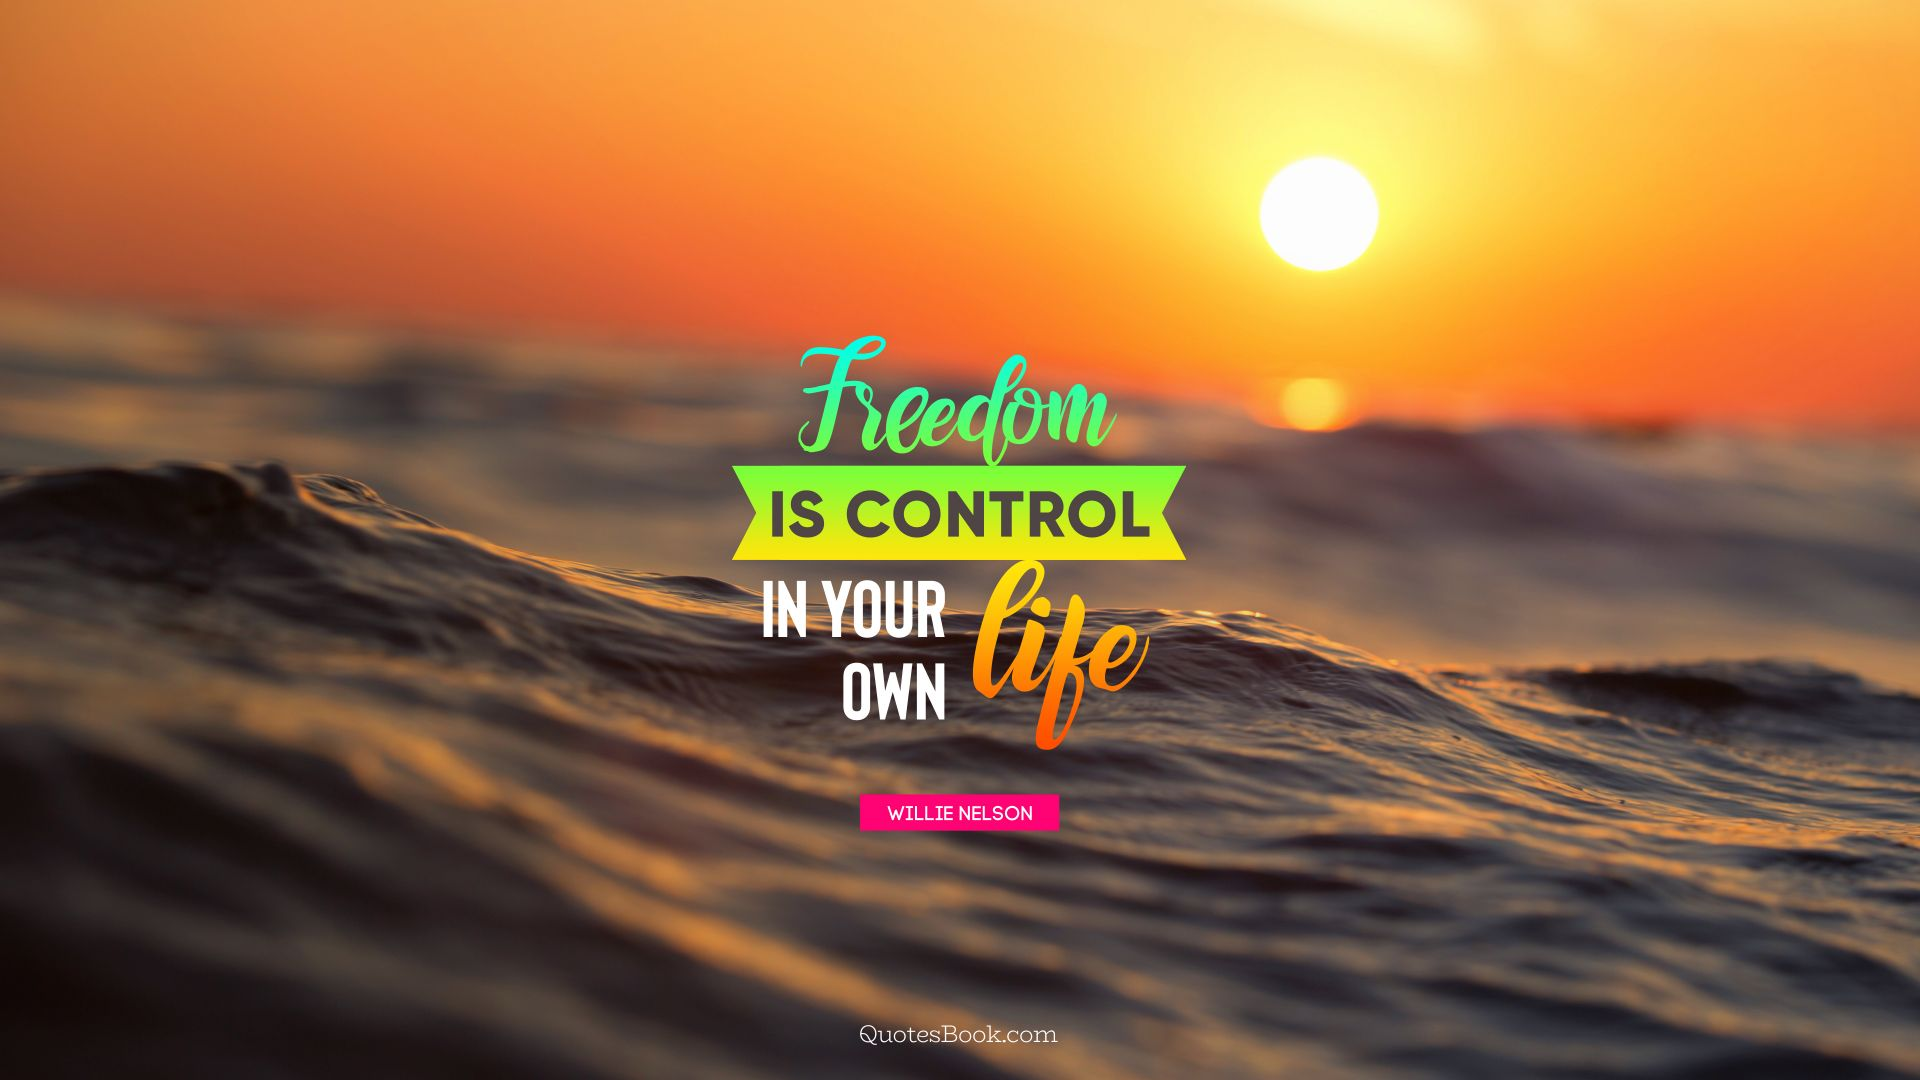 Freedom is control in your own life. - Quote by Willie Nelson